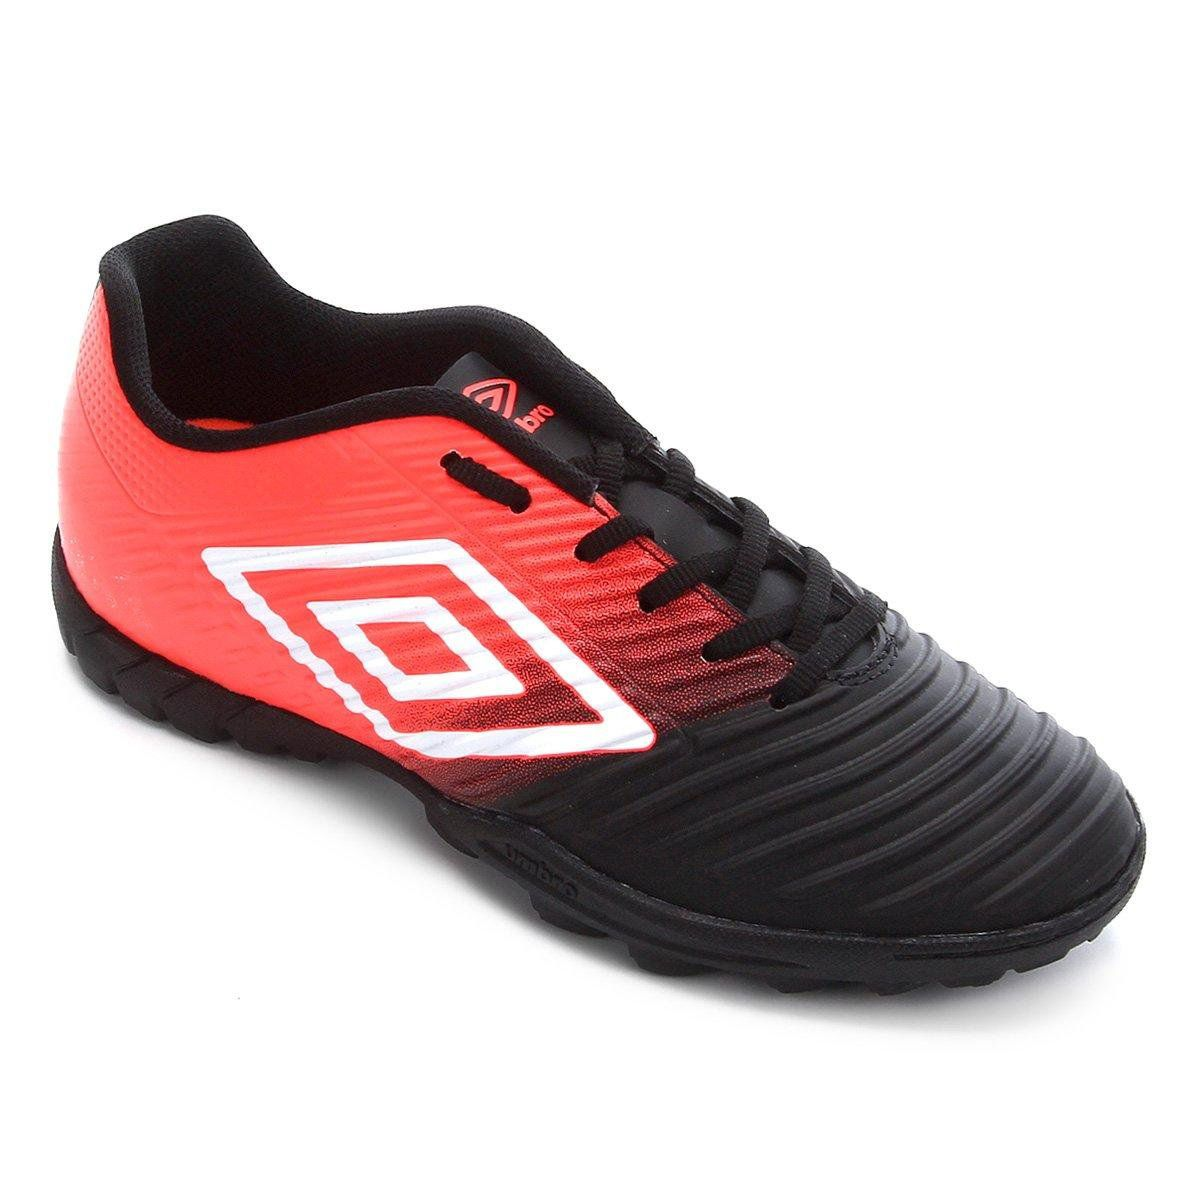 Chuteira Society Umbro Fifty ||i Masculino